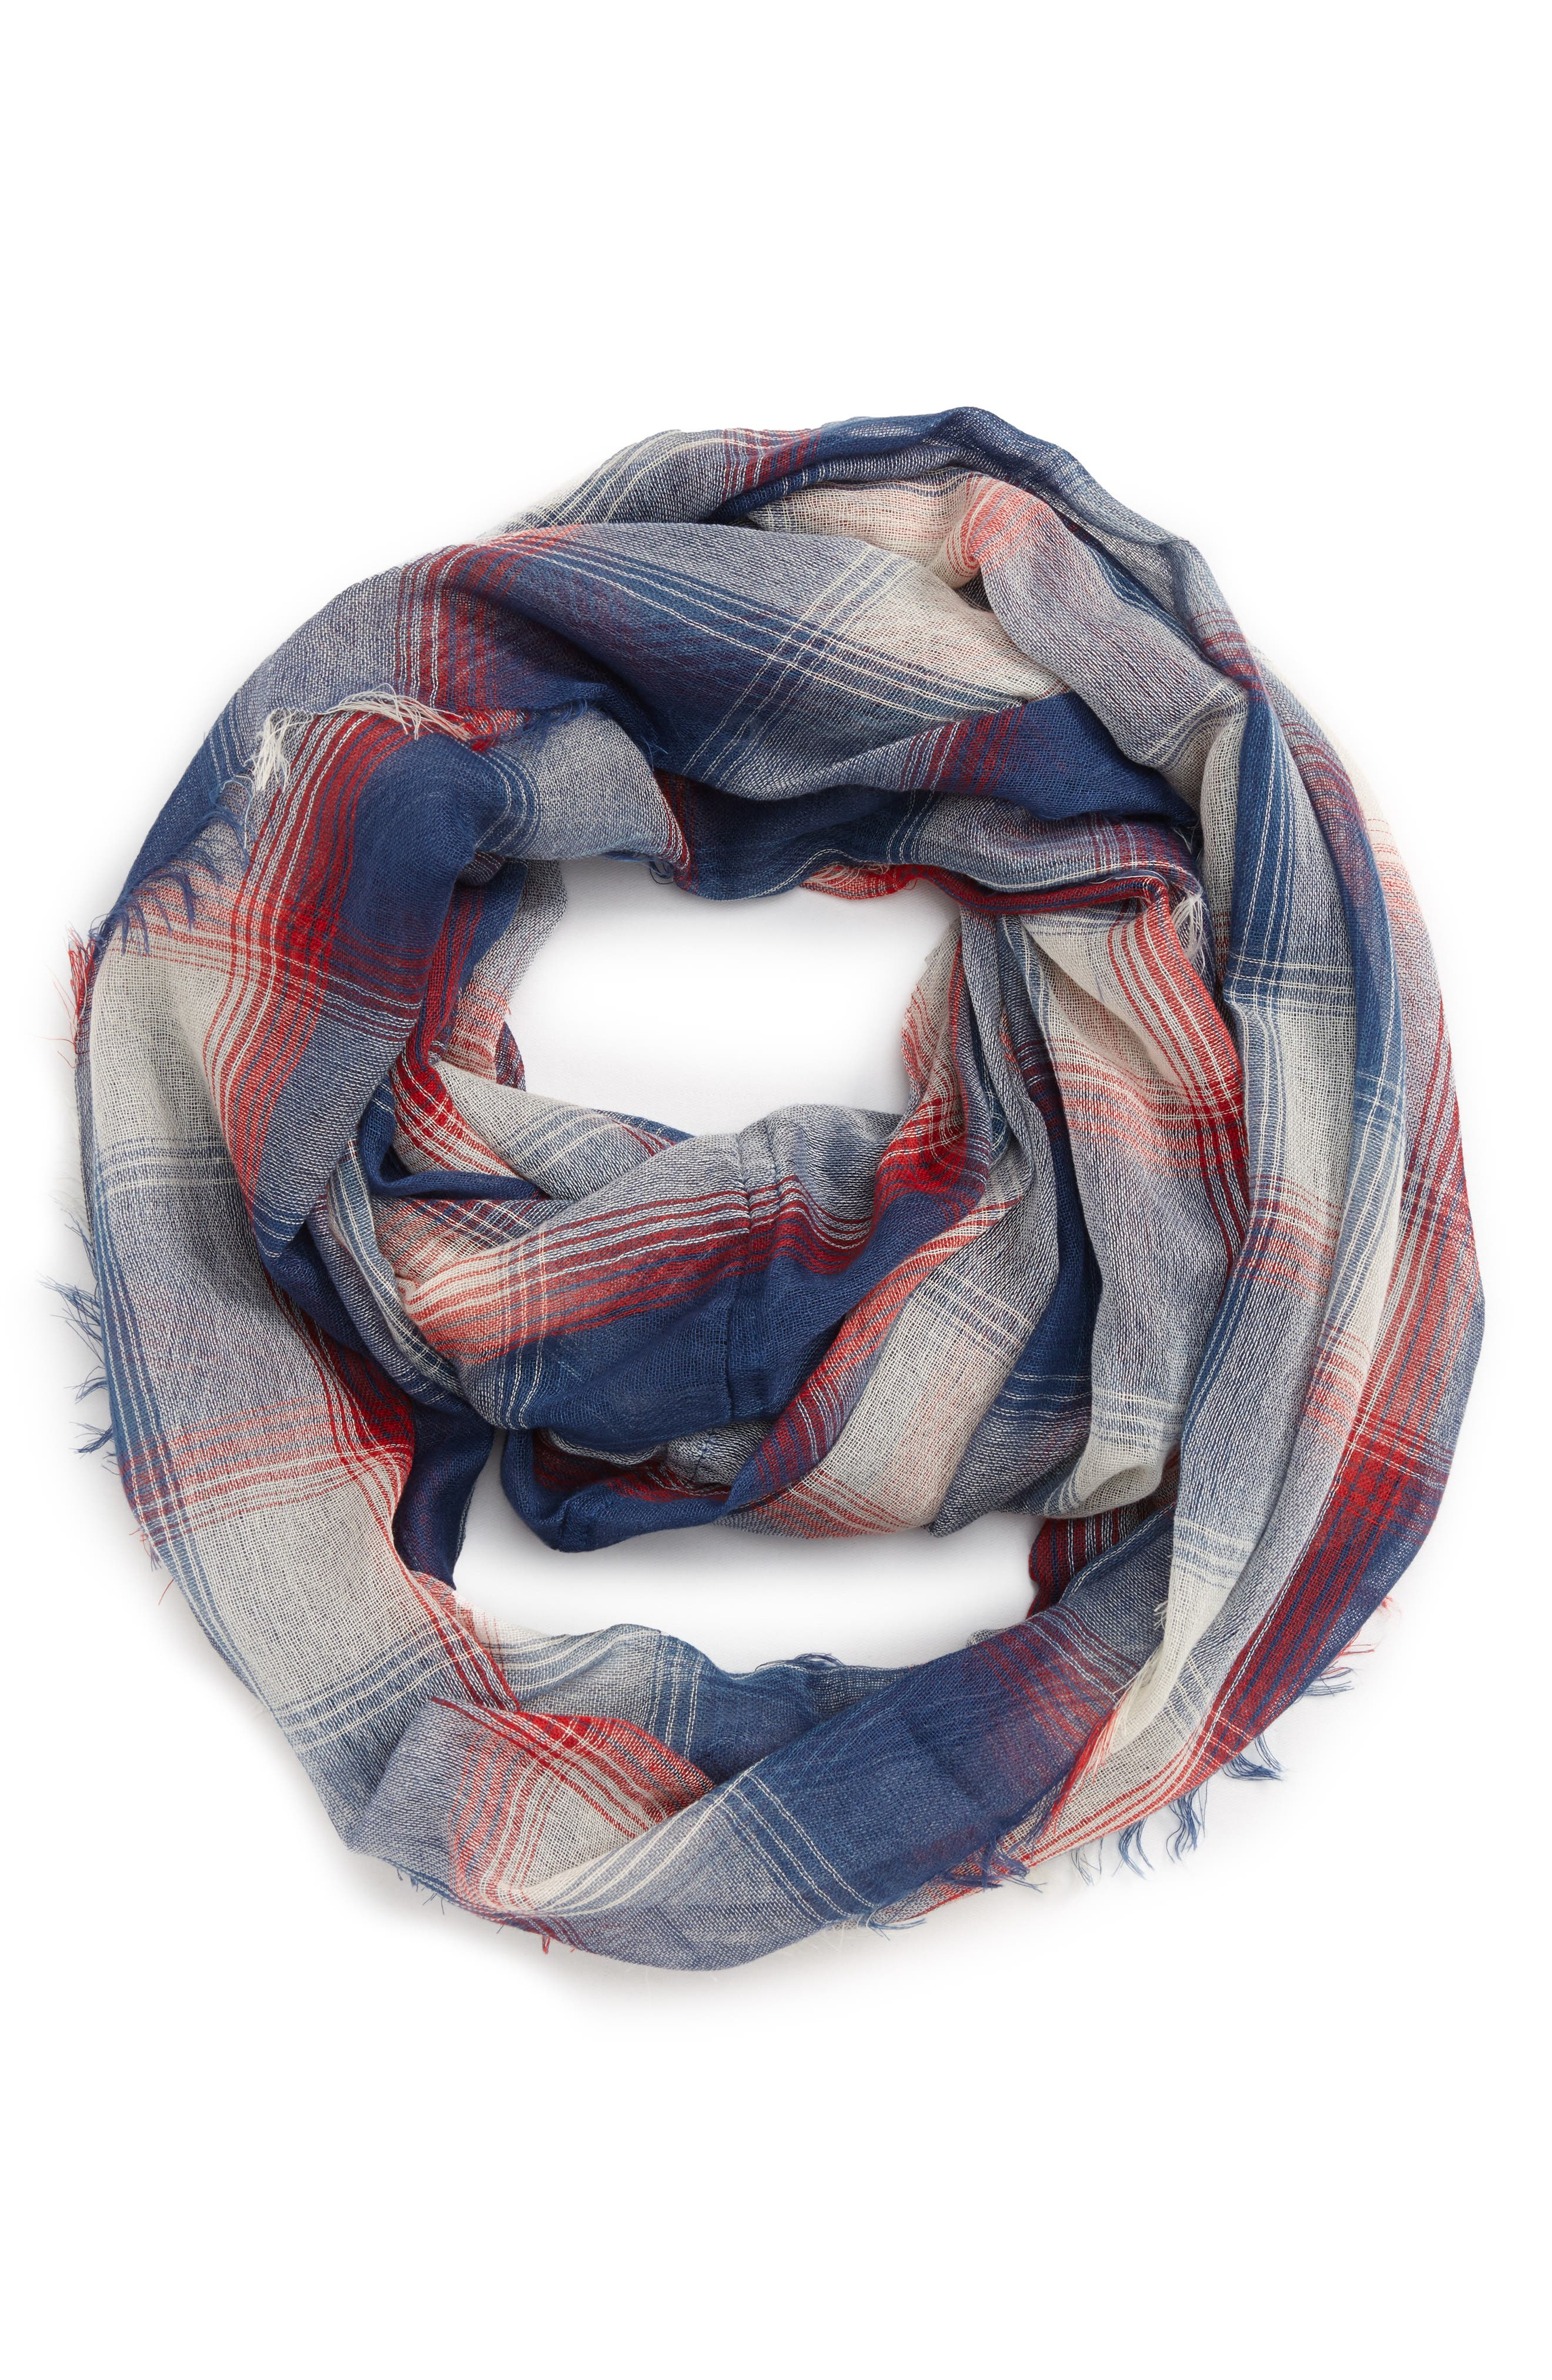 Alternate Image 1 Selected - BP. Plaid Infinity Scarf